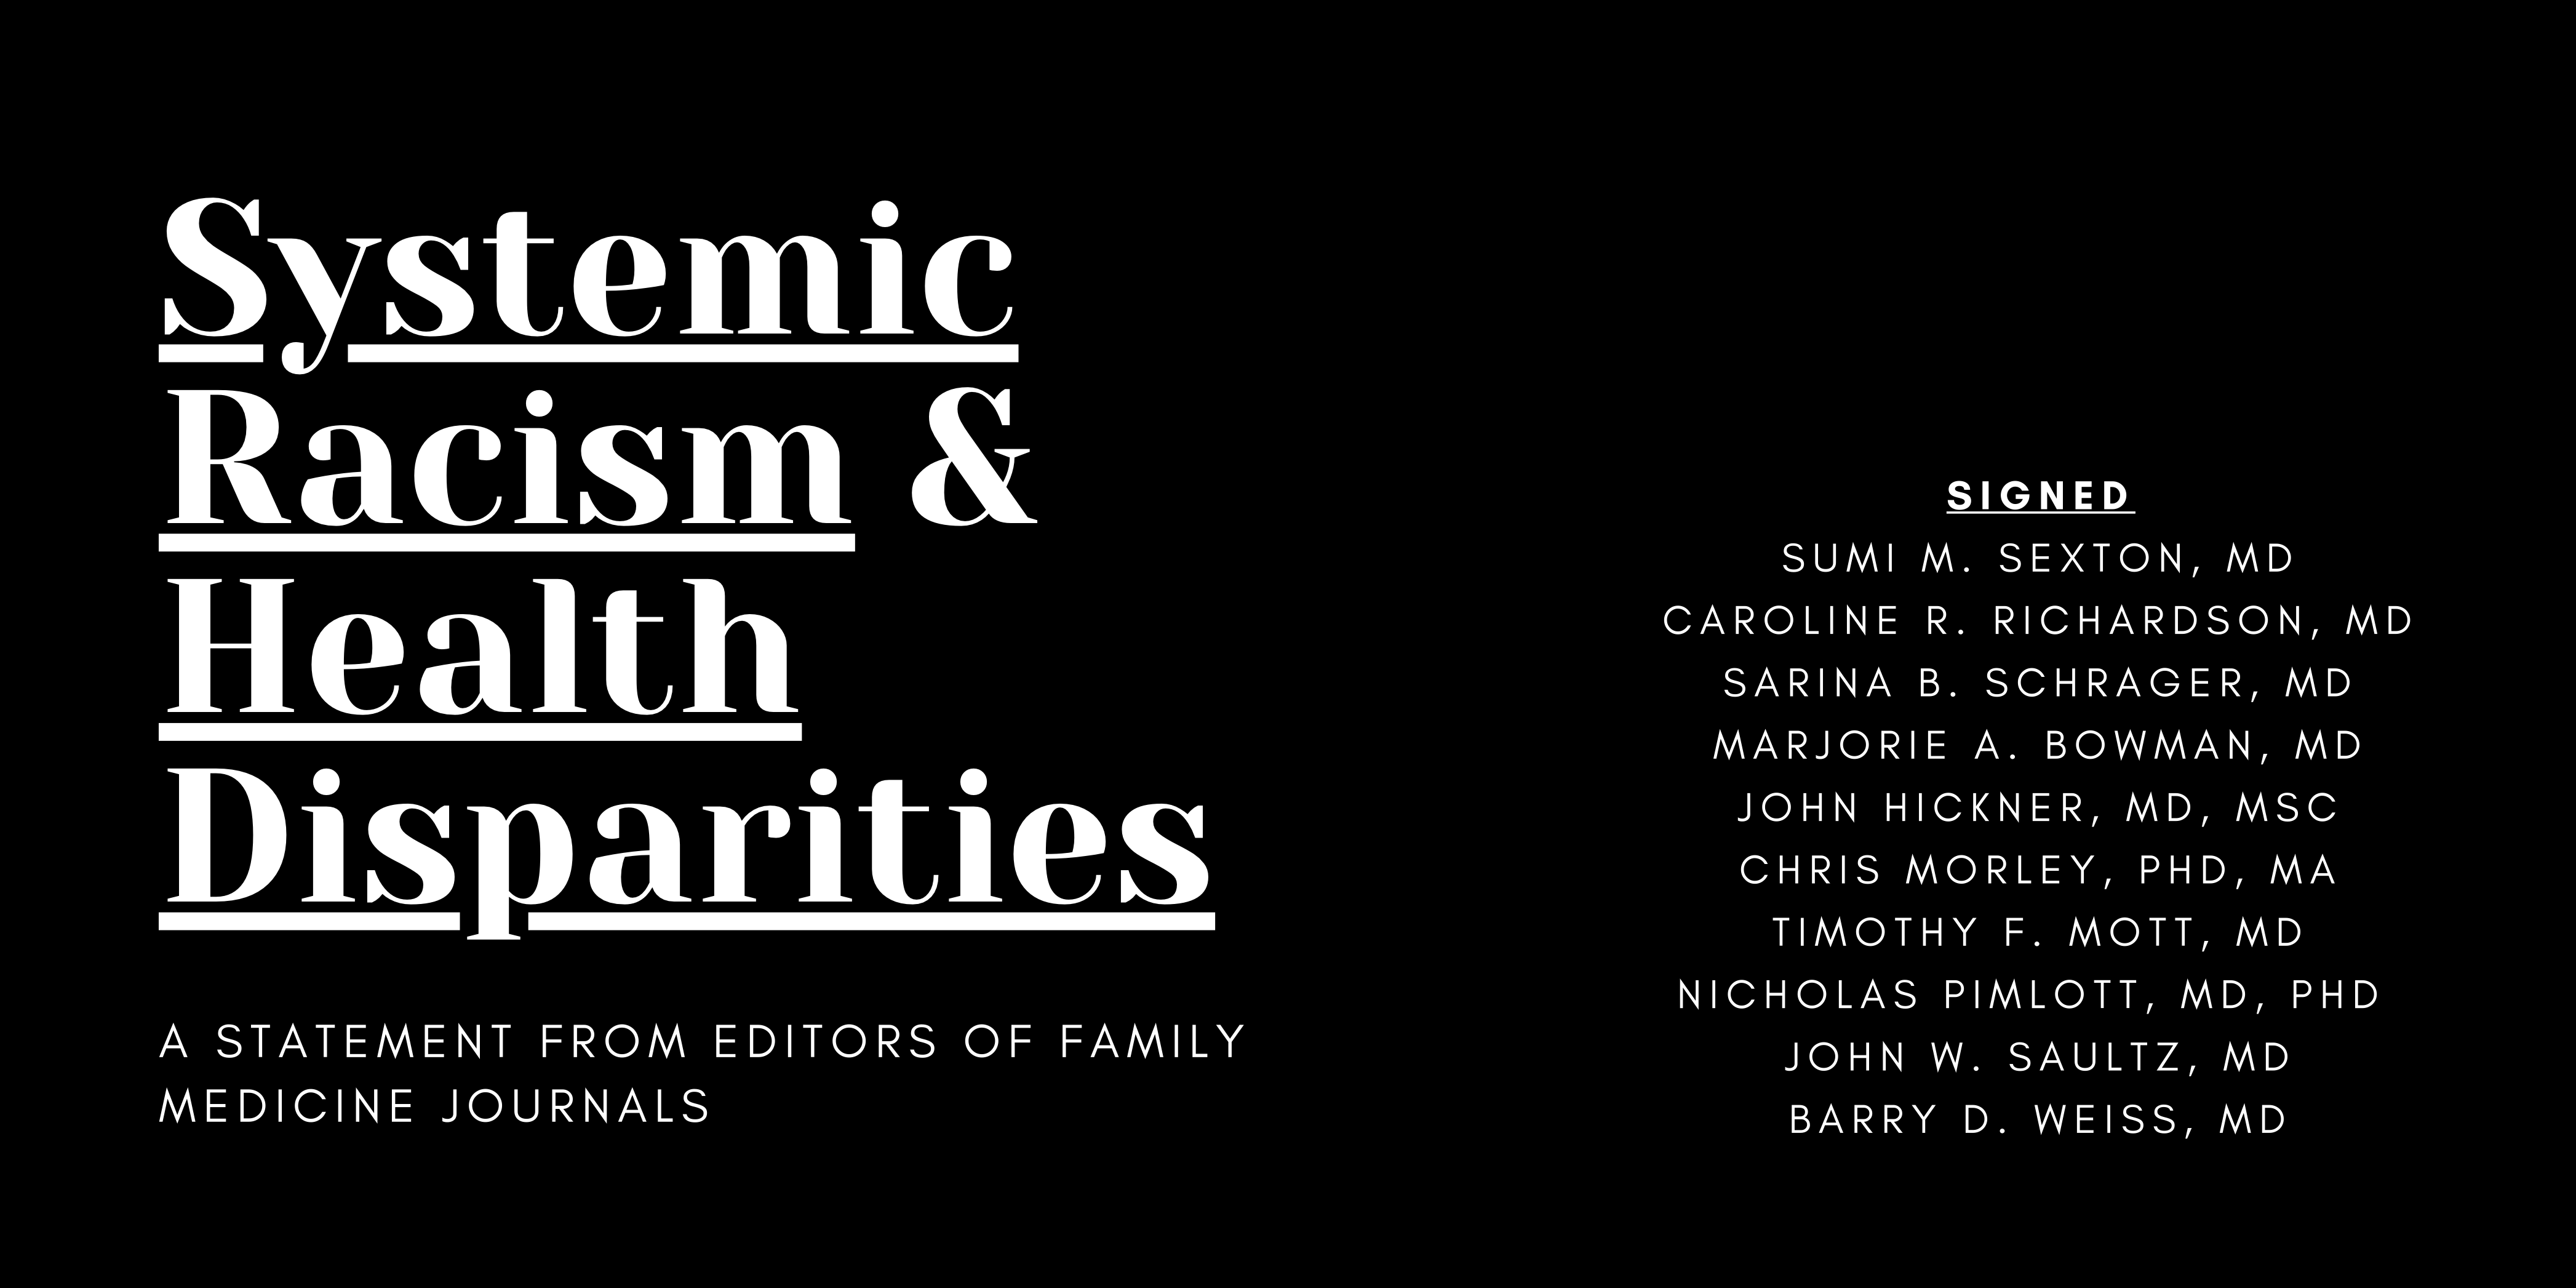 Systemic Racism and Health Disparities: A Statement from Editors of Family Medicine Journals. Signed Sumi M. Sexton, MD; Caroline R. Richardson, MD; Sarina B. Schrager, MD; Marjorie A. Bowman, MD; John Hickner, MD, MSc; Chris Morley, PhD, MA; Timothy F. M